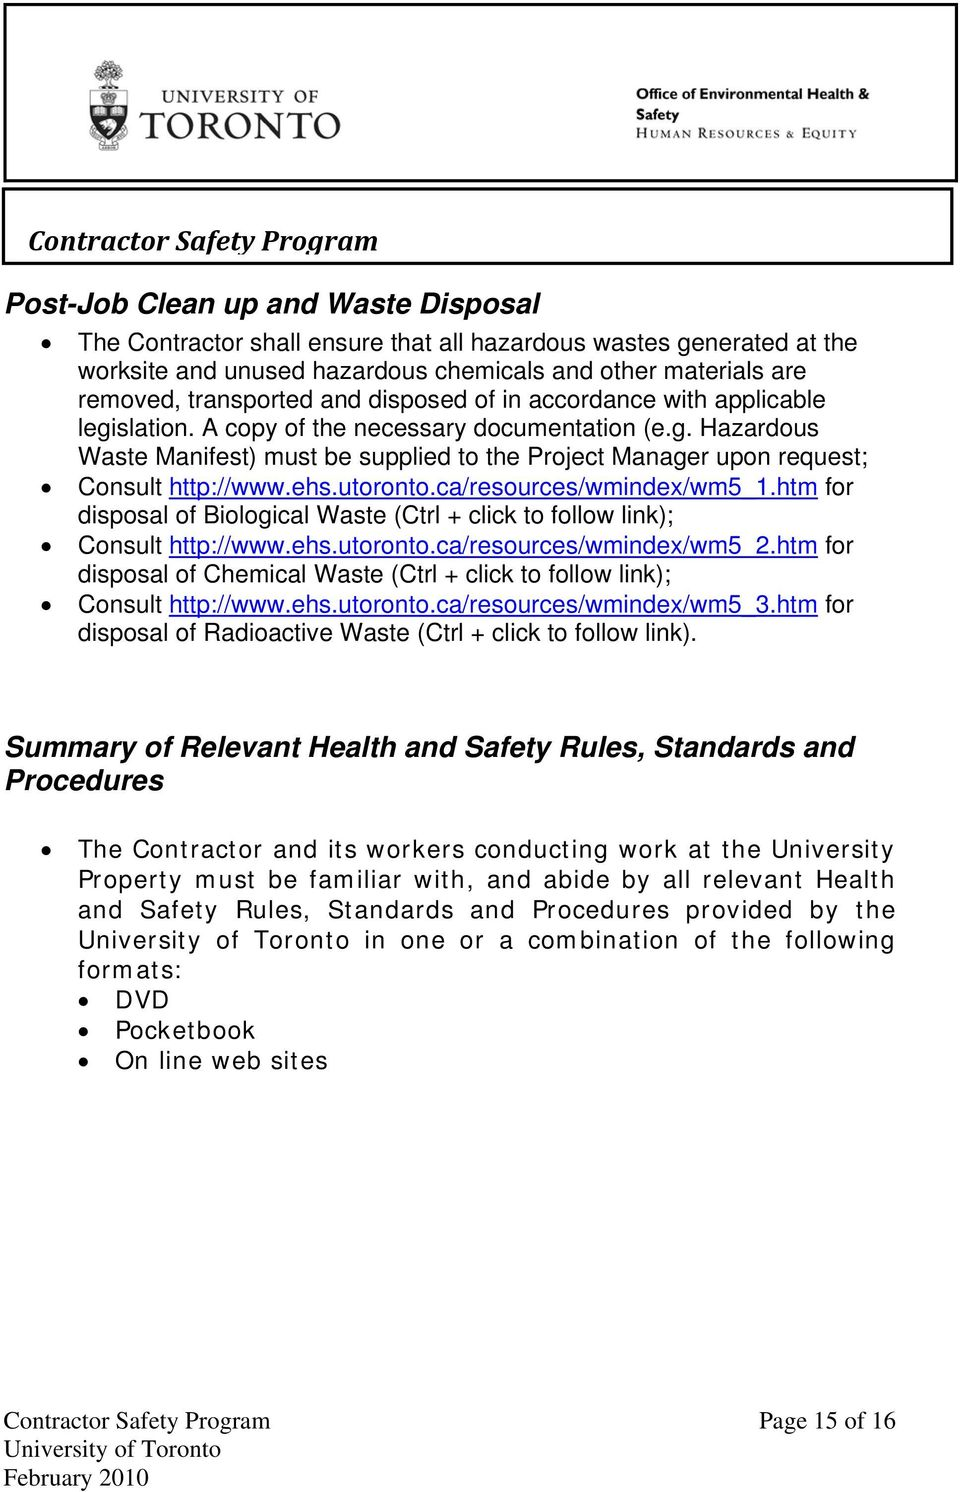 ehs.utoronto.ca/resources/wmindex/wm5_1.htm for disposal of Biological Waste (Ctrl + click to follow link); Consult http://www.ehs.utoronto.ca/resources/wmindex/wm5_2.